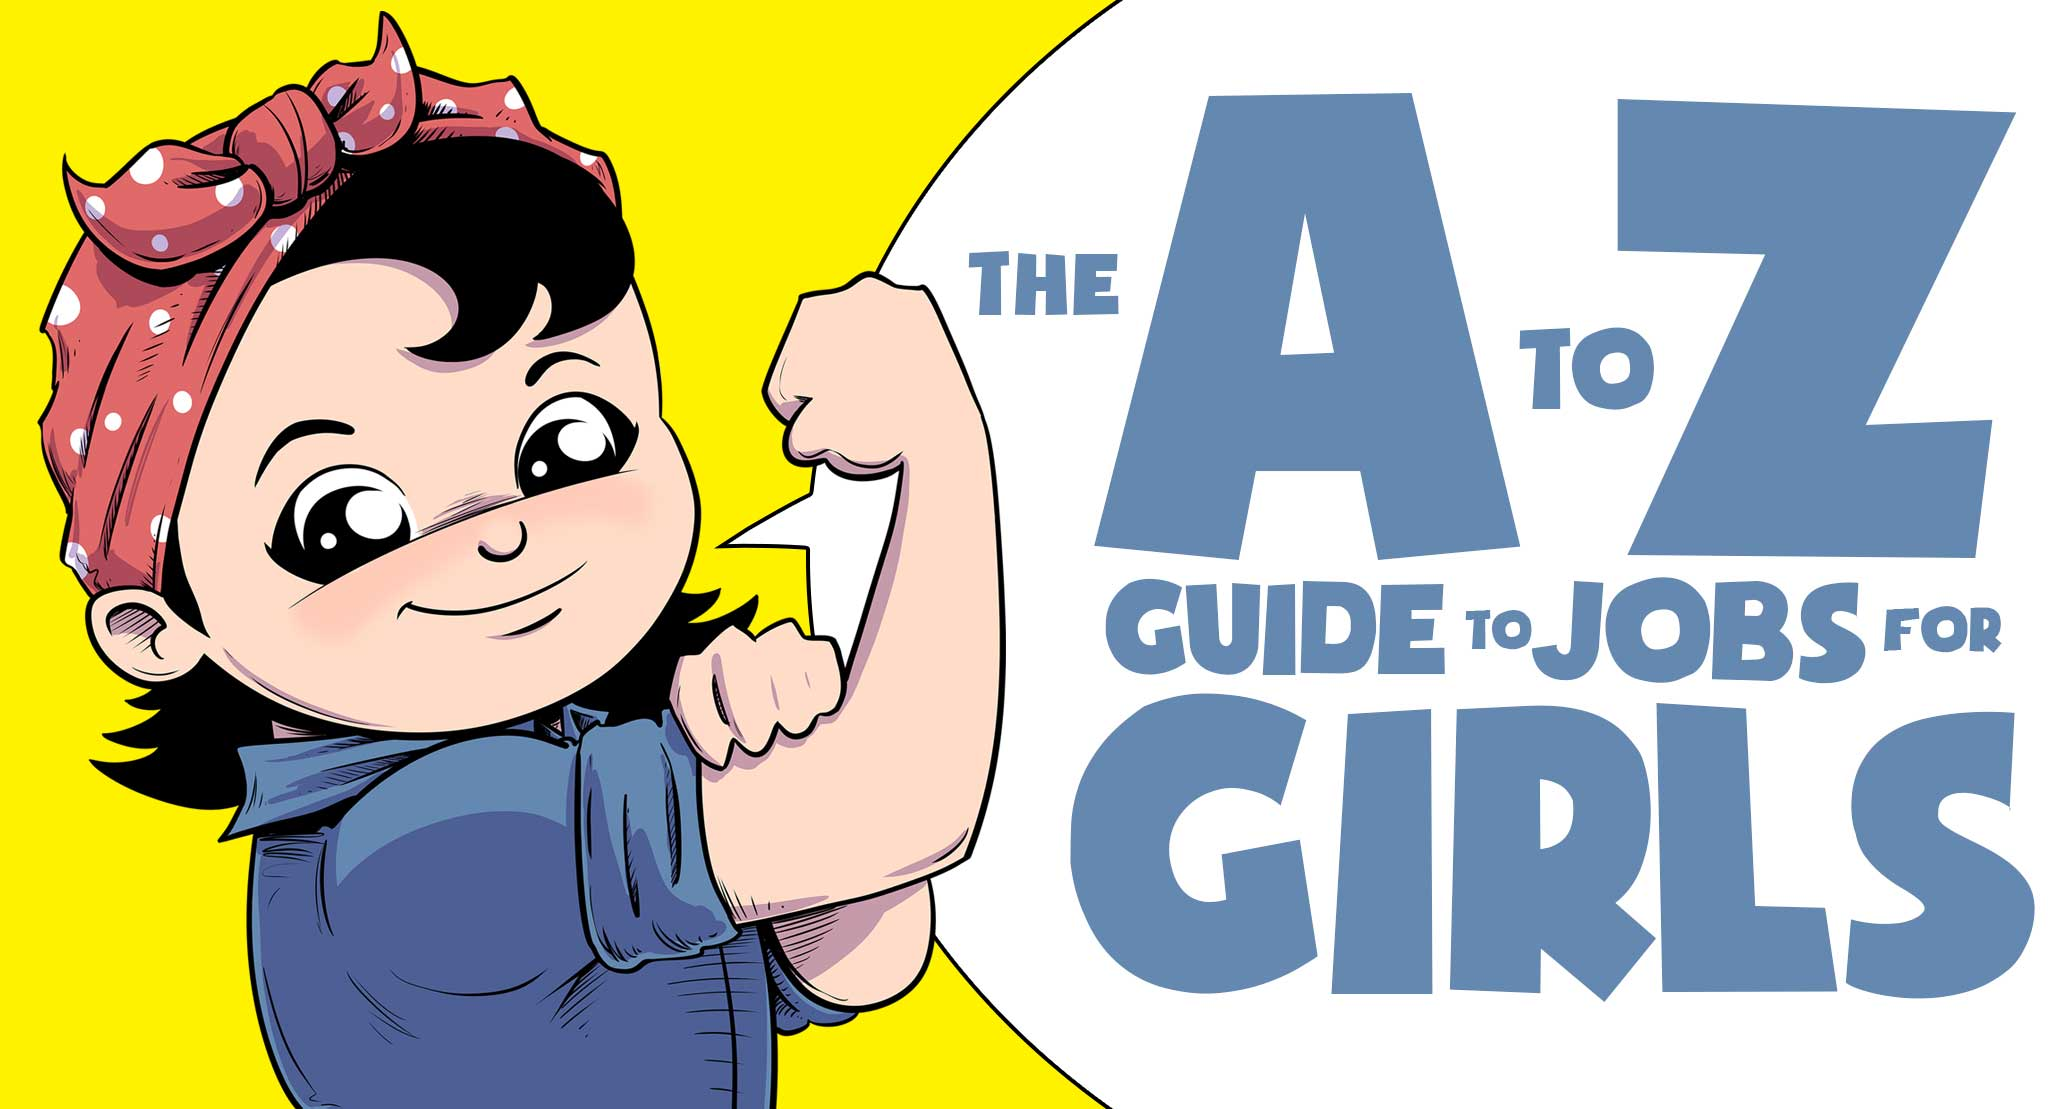 The A to Z Guide to Jobs for Girls